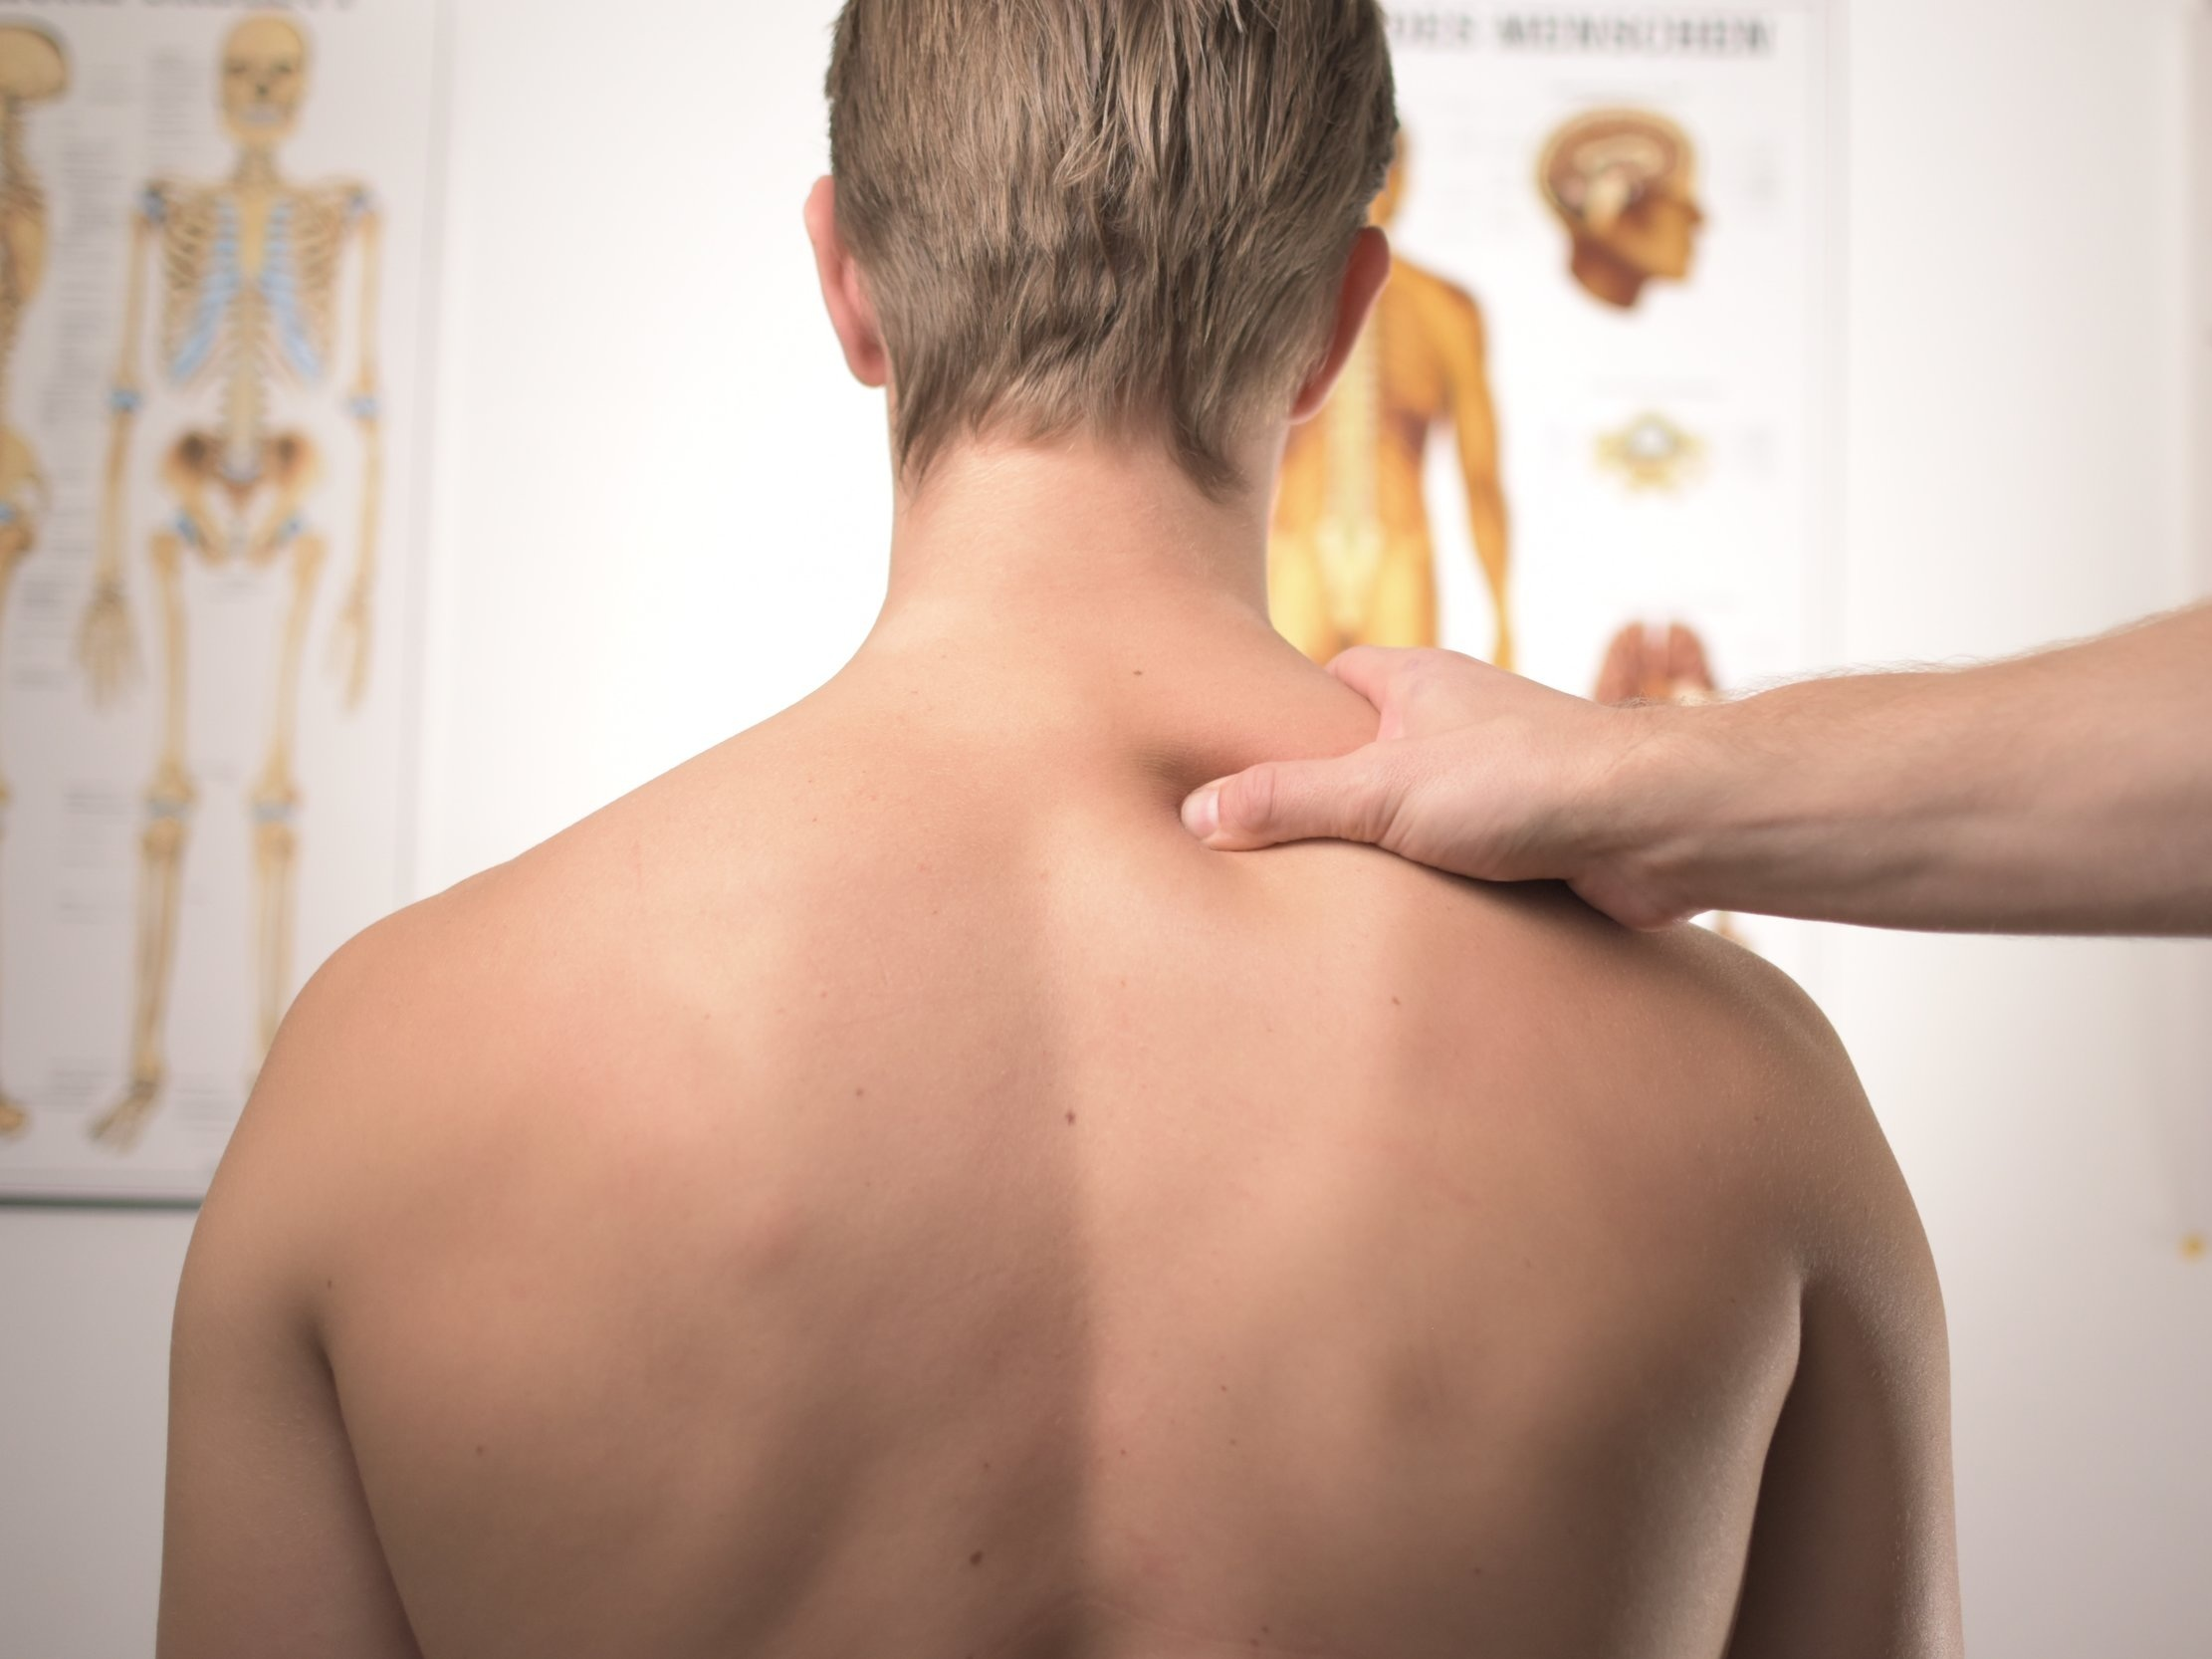 NMT/Trigger Point Therapy - Neuromuscular Therapy is a highly specialized form of manual therapy that corrects pain and dysfunction by treating trigger points, muscle adhesions, and fascial (connective tissue) patterns. Great for migraines, TMJ, and focused pain.$20 add-on to Swedish massage